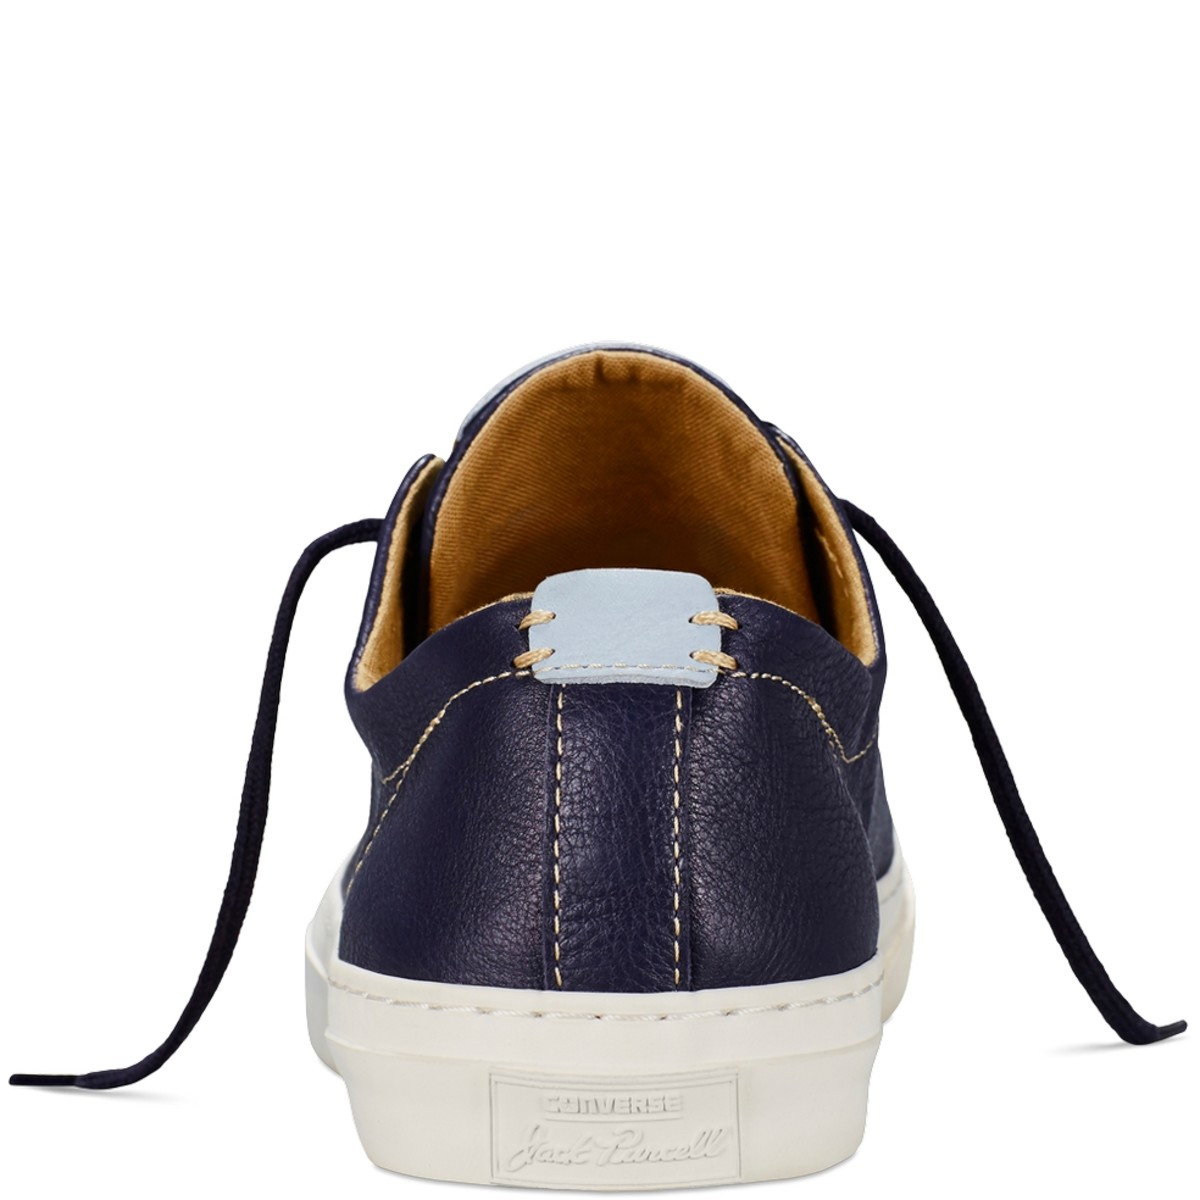 the-converse-jack-purcell-remastered-in-tumbled-leather-4